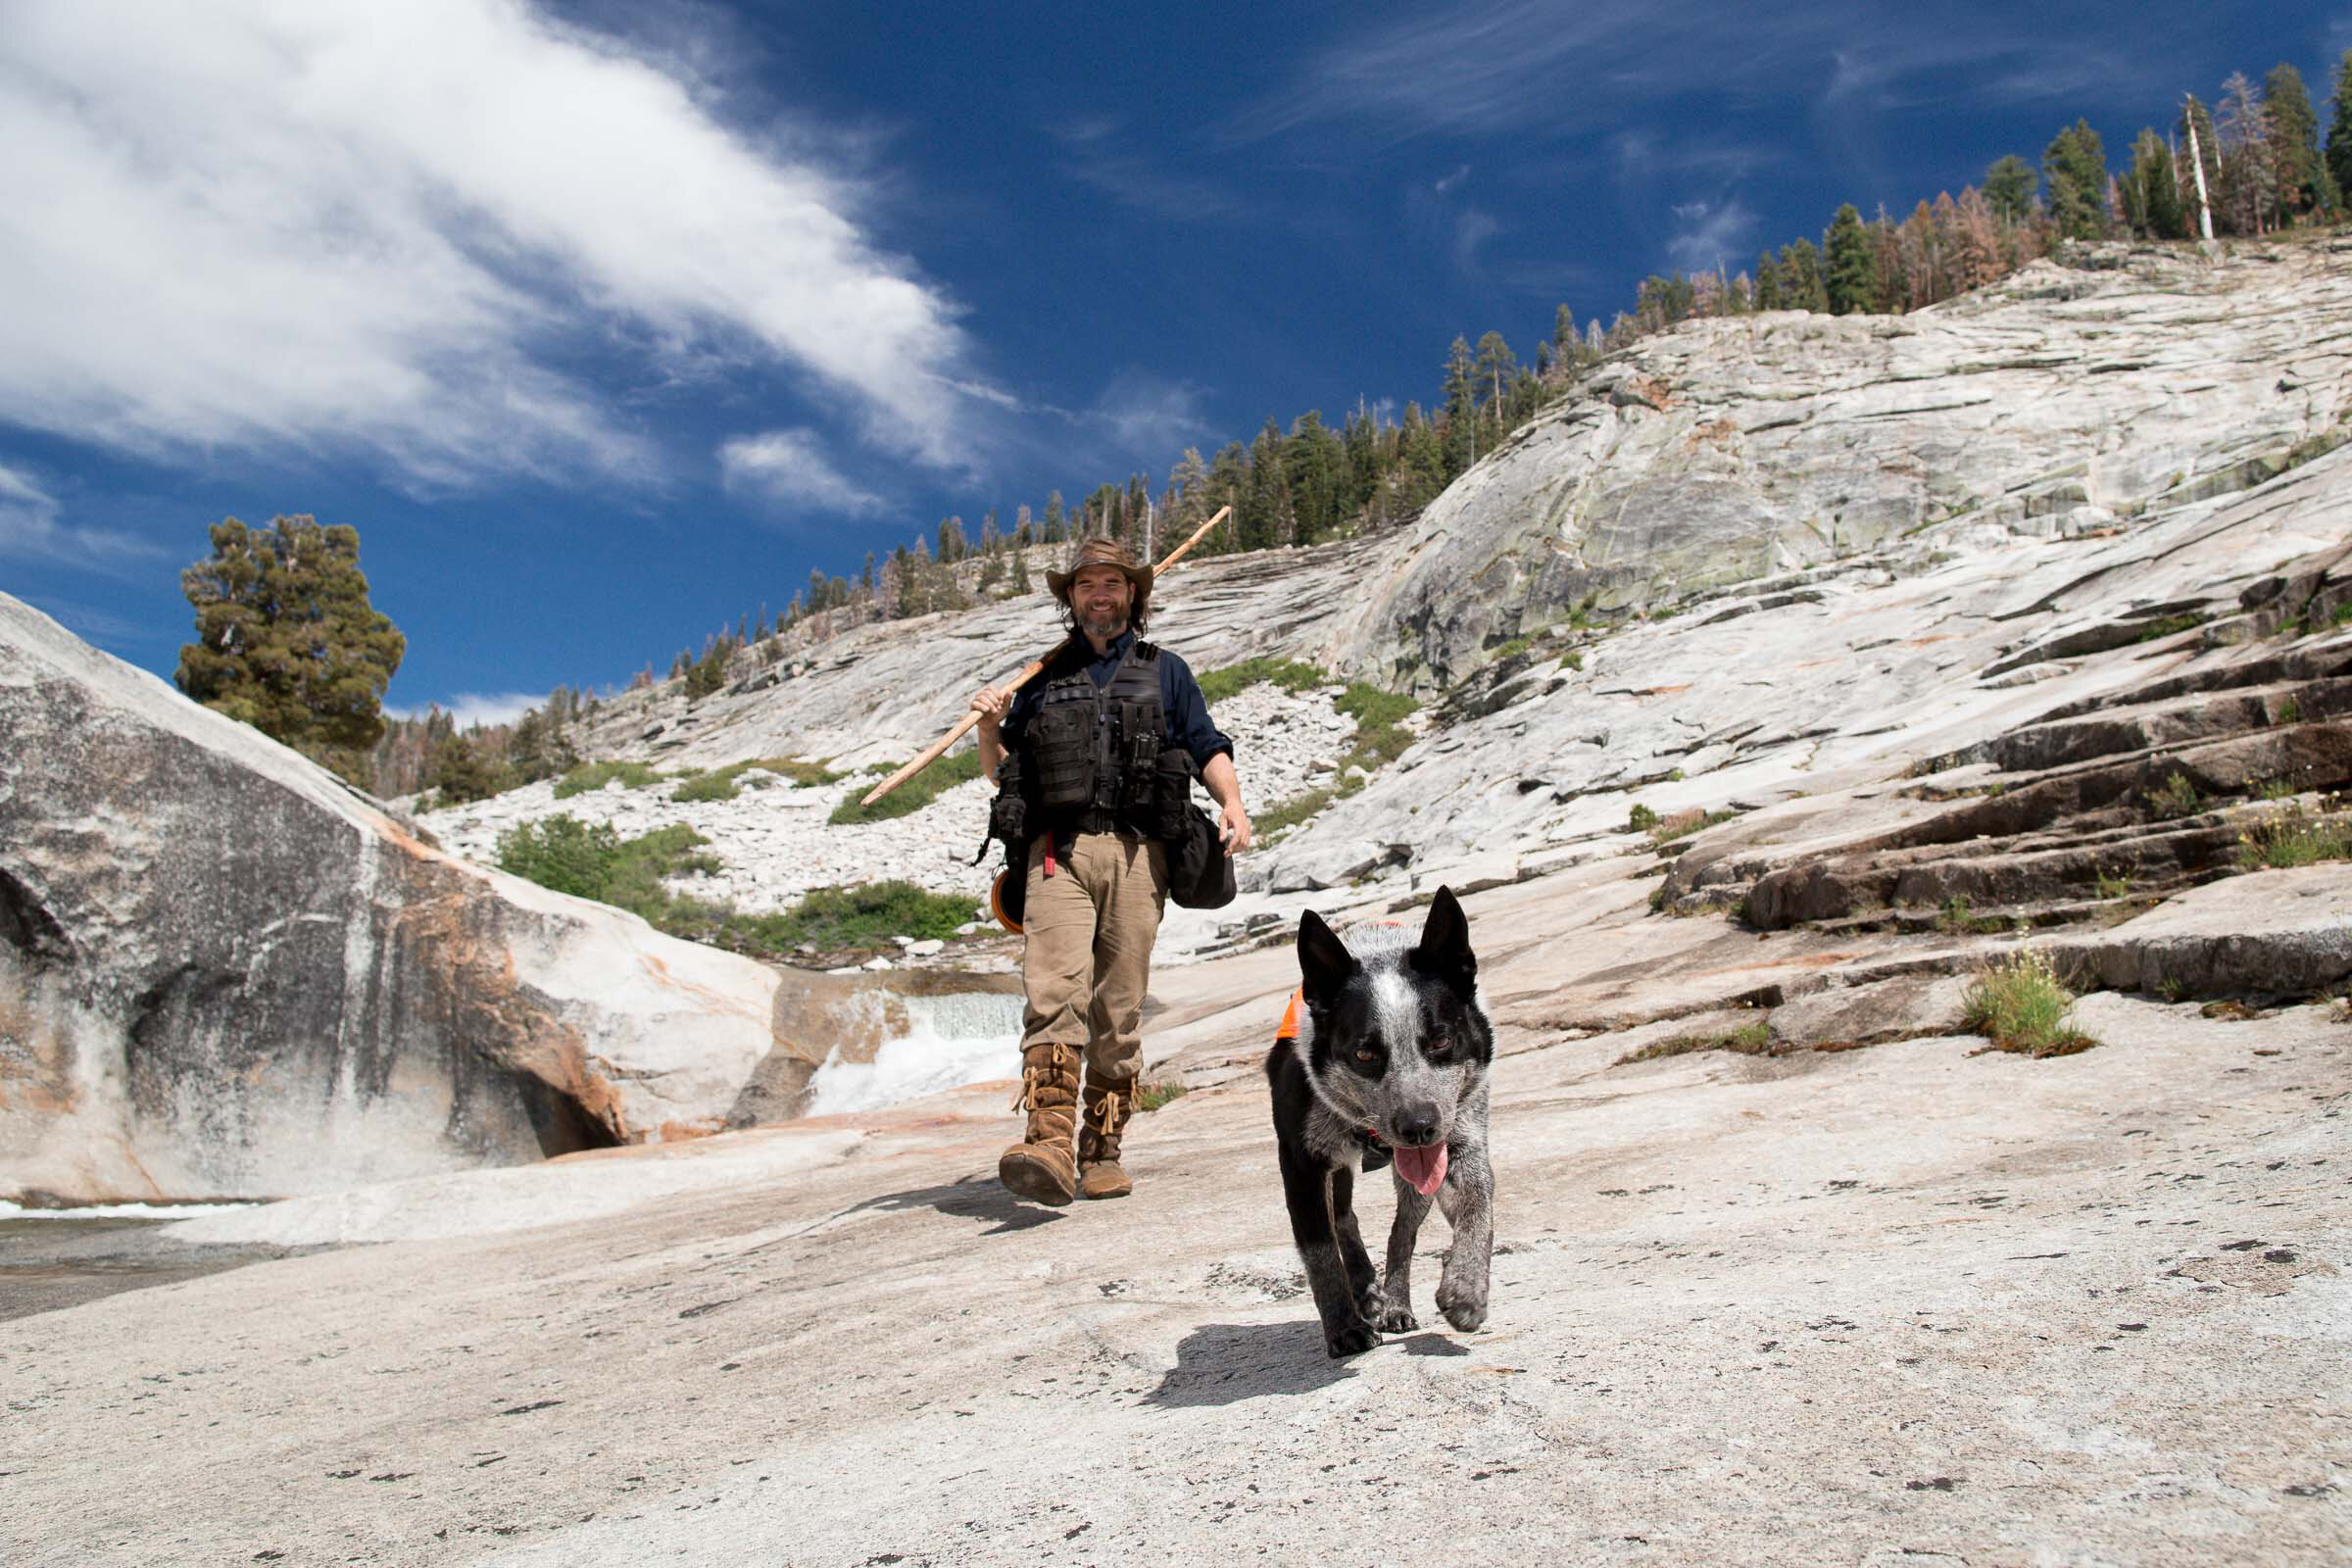 Trail Blazers - We adopt the K9 scamps of the shelter world, those dogs deemed too wild to be pets, and teach them in scent detection. Together we travel to wild spaces and places, working hard to conserve them, one non-invasive project at a time.